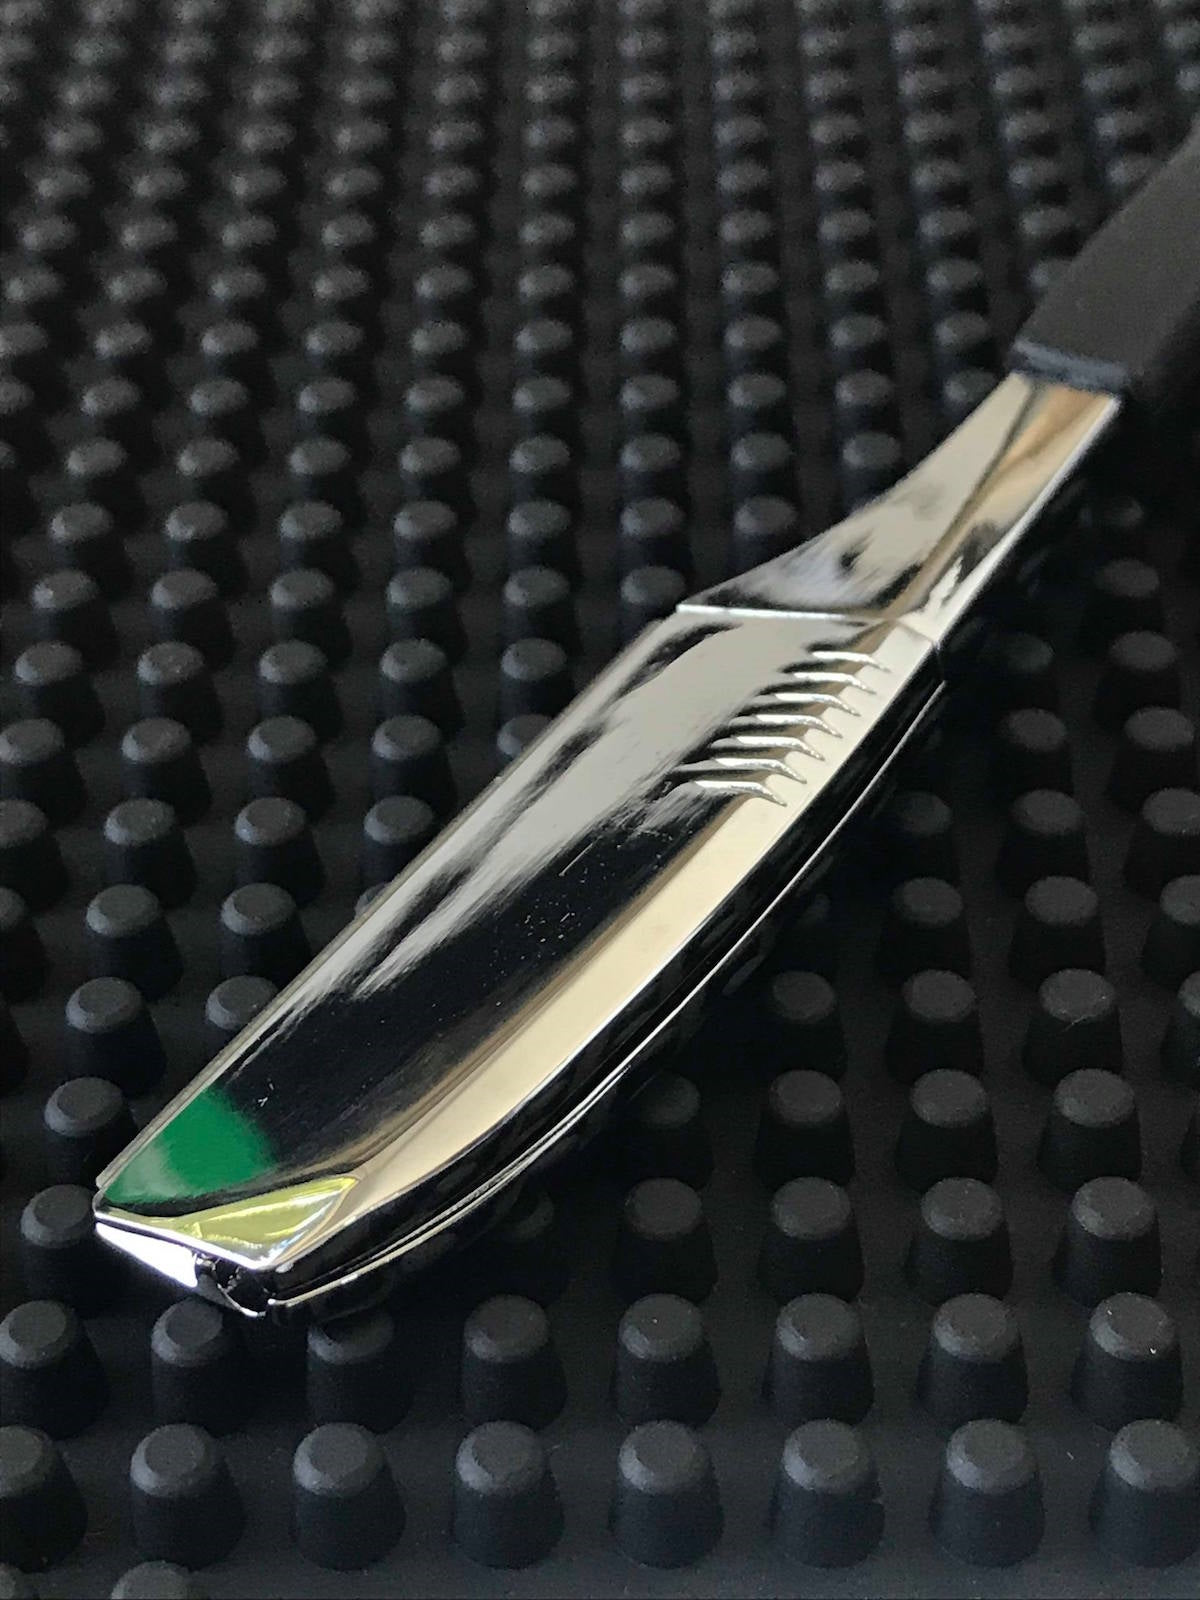 iCandy Professional Chrome & Black Shaving Razor - iCandy Scissors